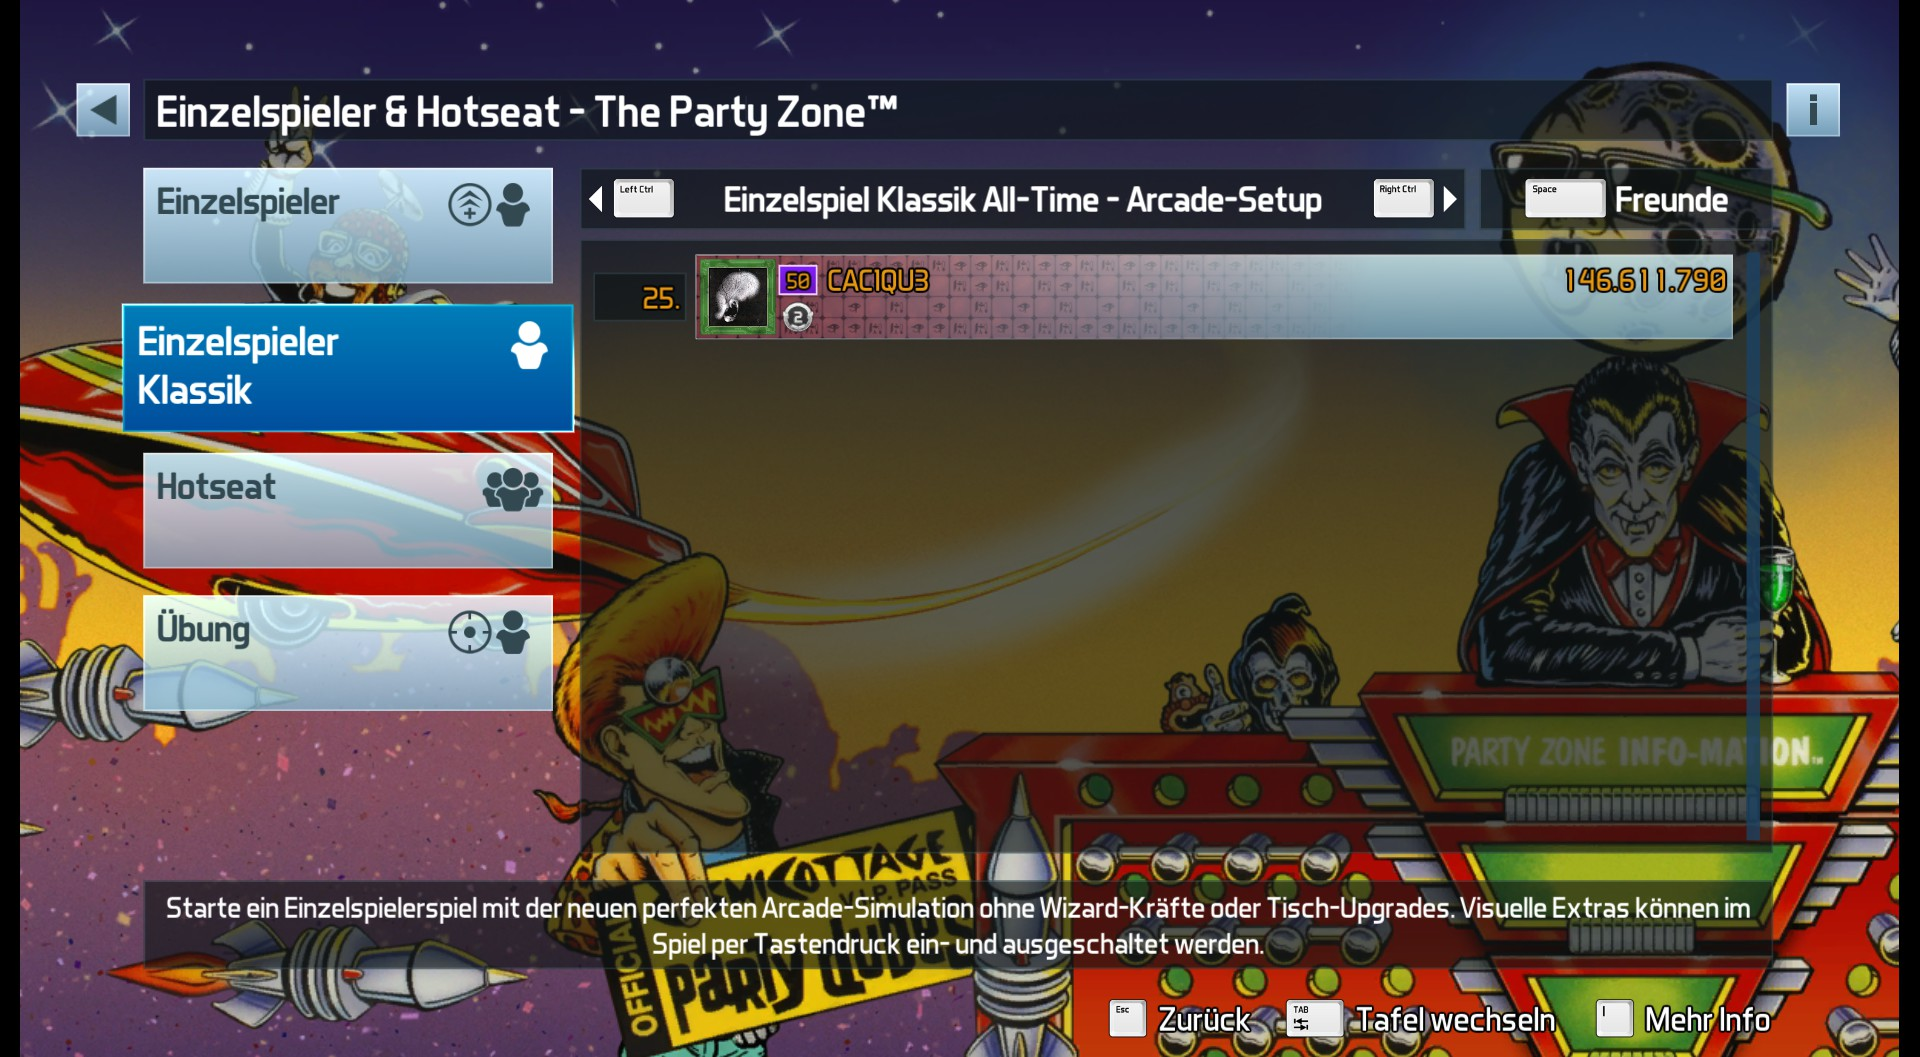 CAC1QU3: Pinball FX3: The Party Zone [Arcade] (PC) 146,611,790 points on 2019-04-26 00:03:58